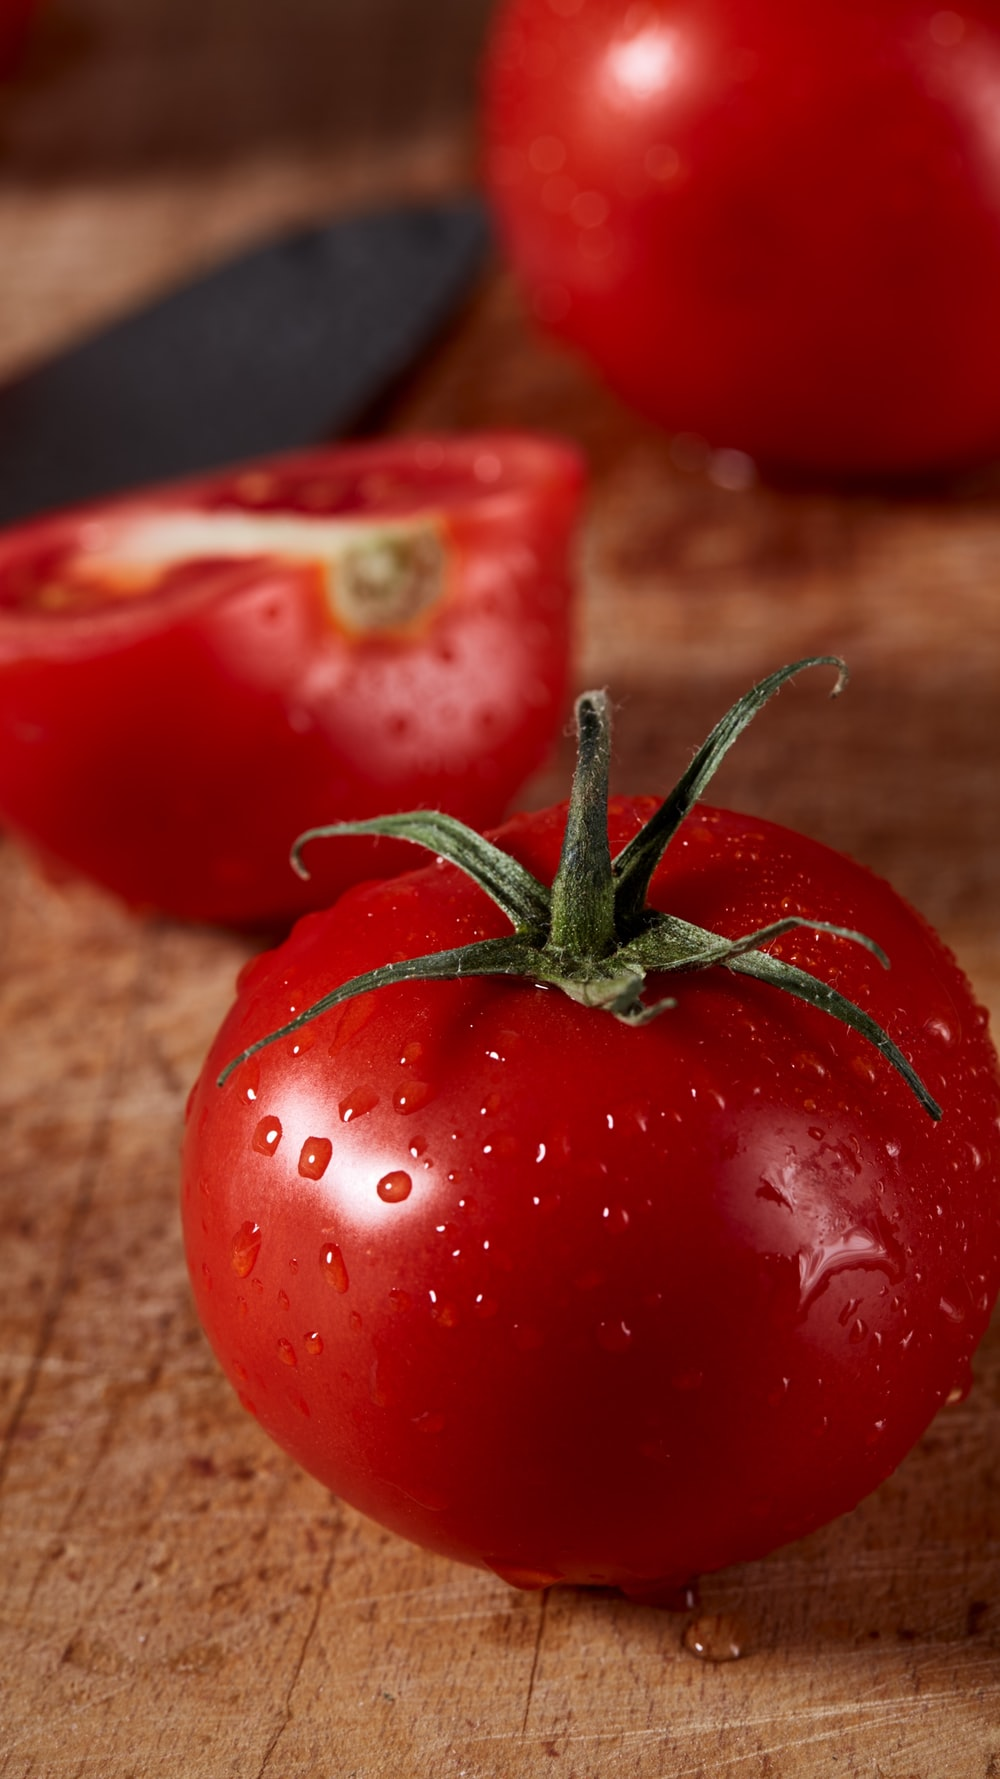 two red tomatoes beside sliced red tomato